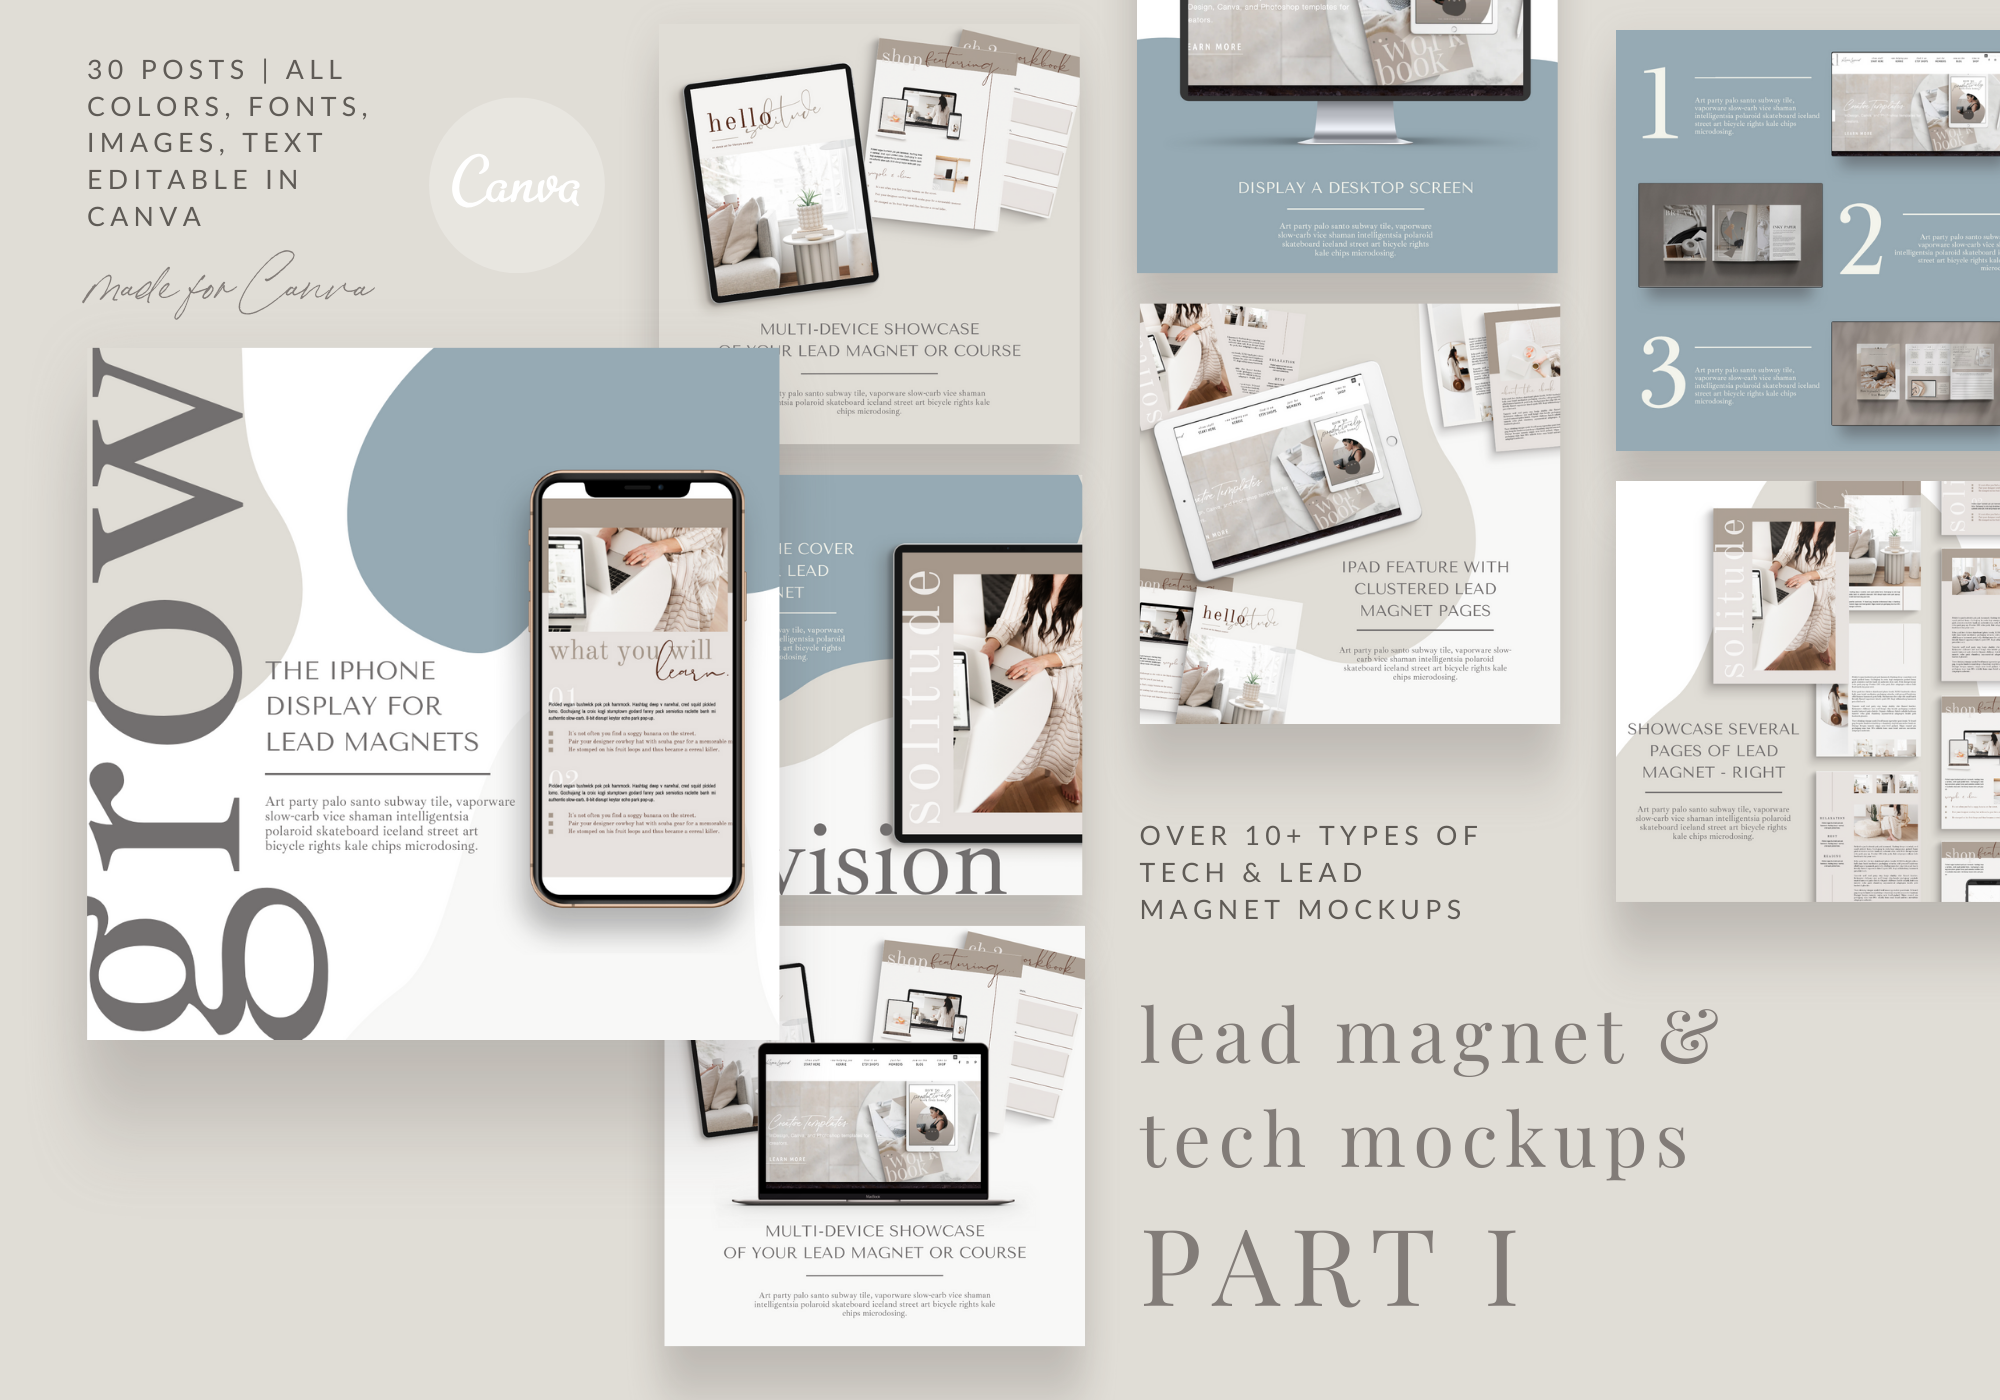 Lead Magnet Tech Mockups - PART 1 - Instagram Templates for Canva